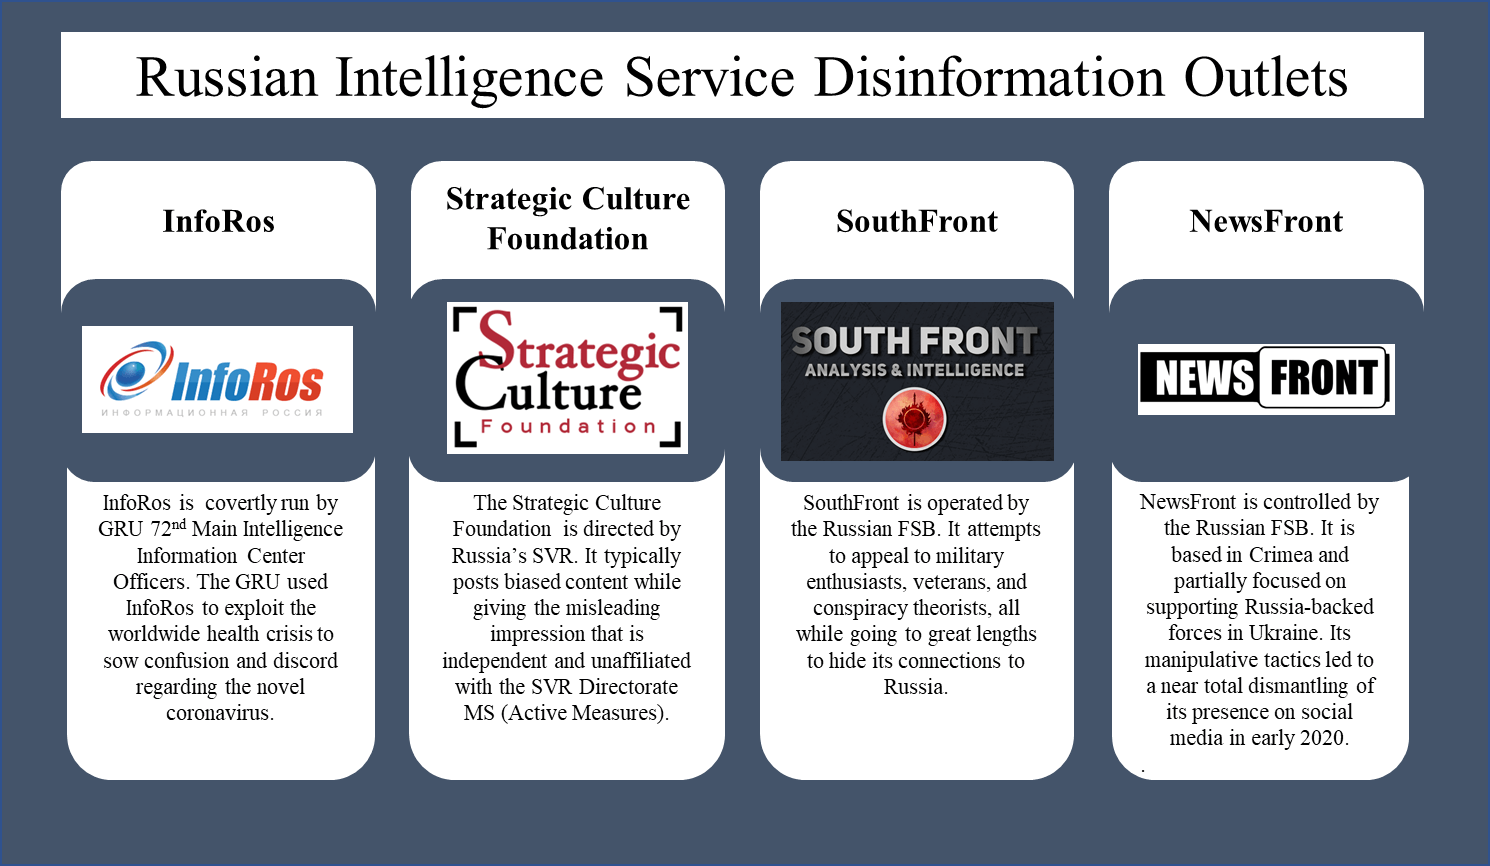 front media organizations associated with Russian intelligence heimdal security image